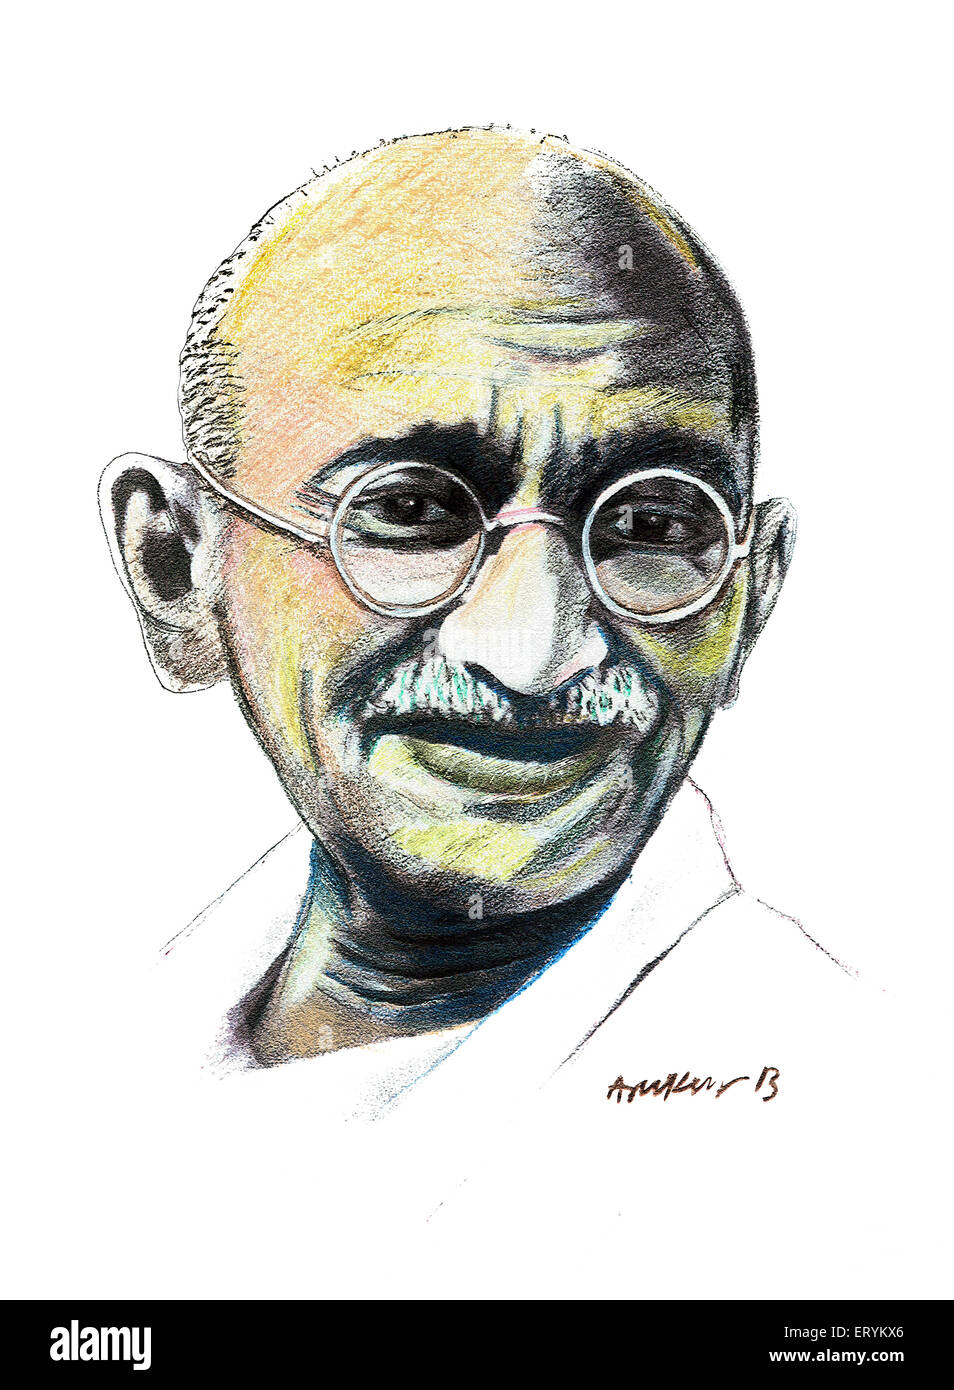 Mahatma Gandhi Painting Stock Photos & Mahatma Gandhi